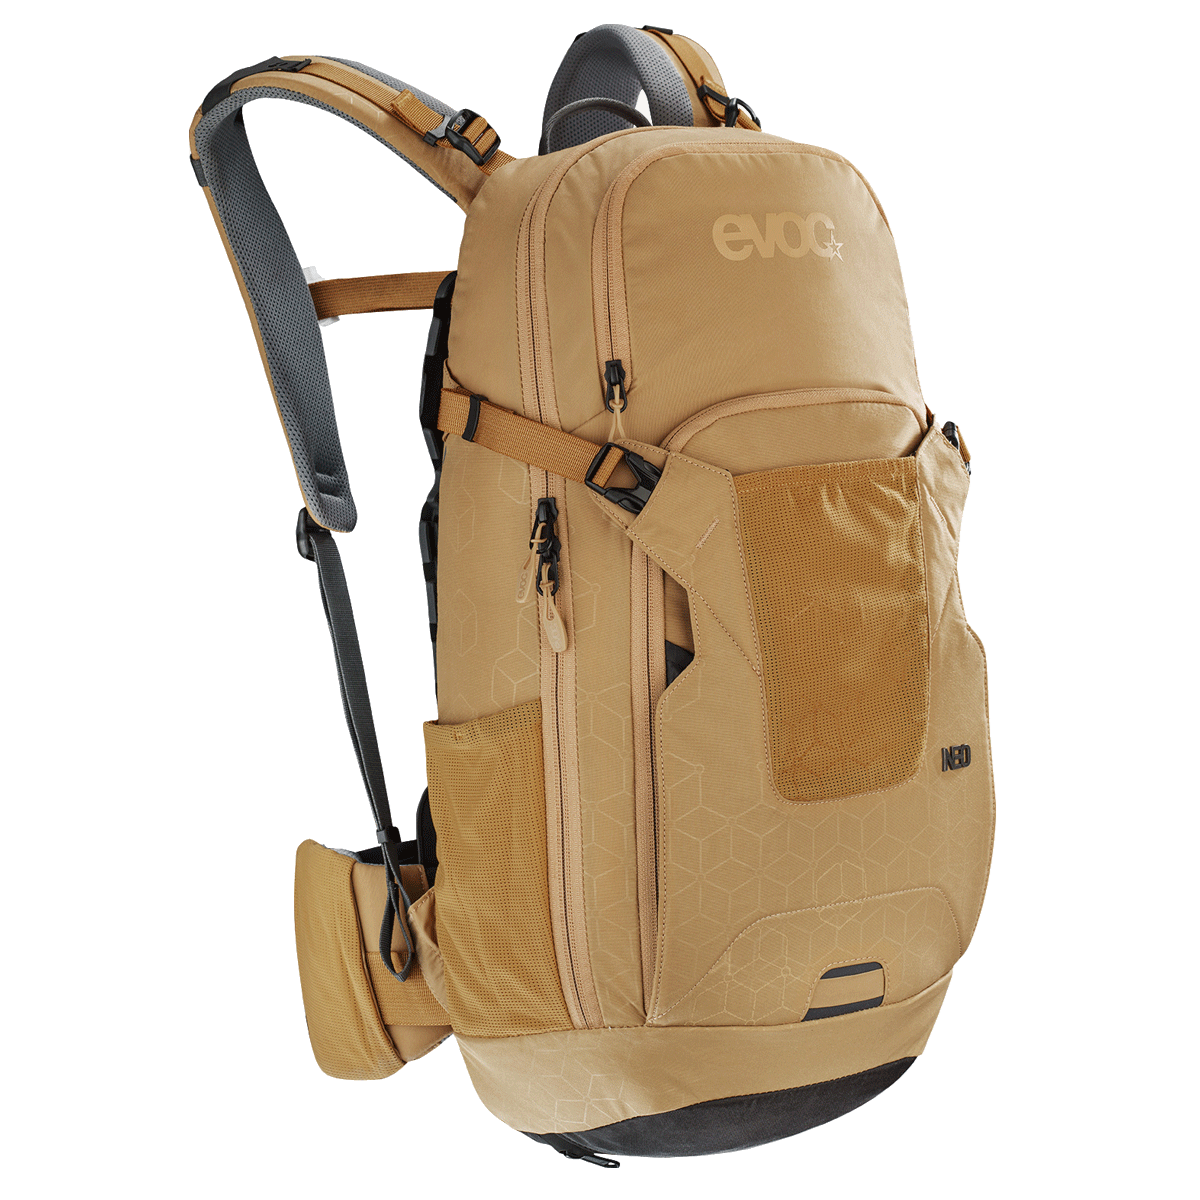 ev Accessories > Bags & Seatpacks Gold / Small / Medium EVOC NEO PROTECTOR BACKPACK 16L